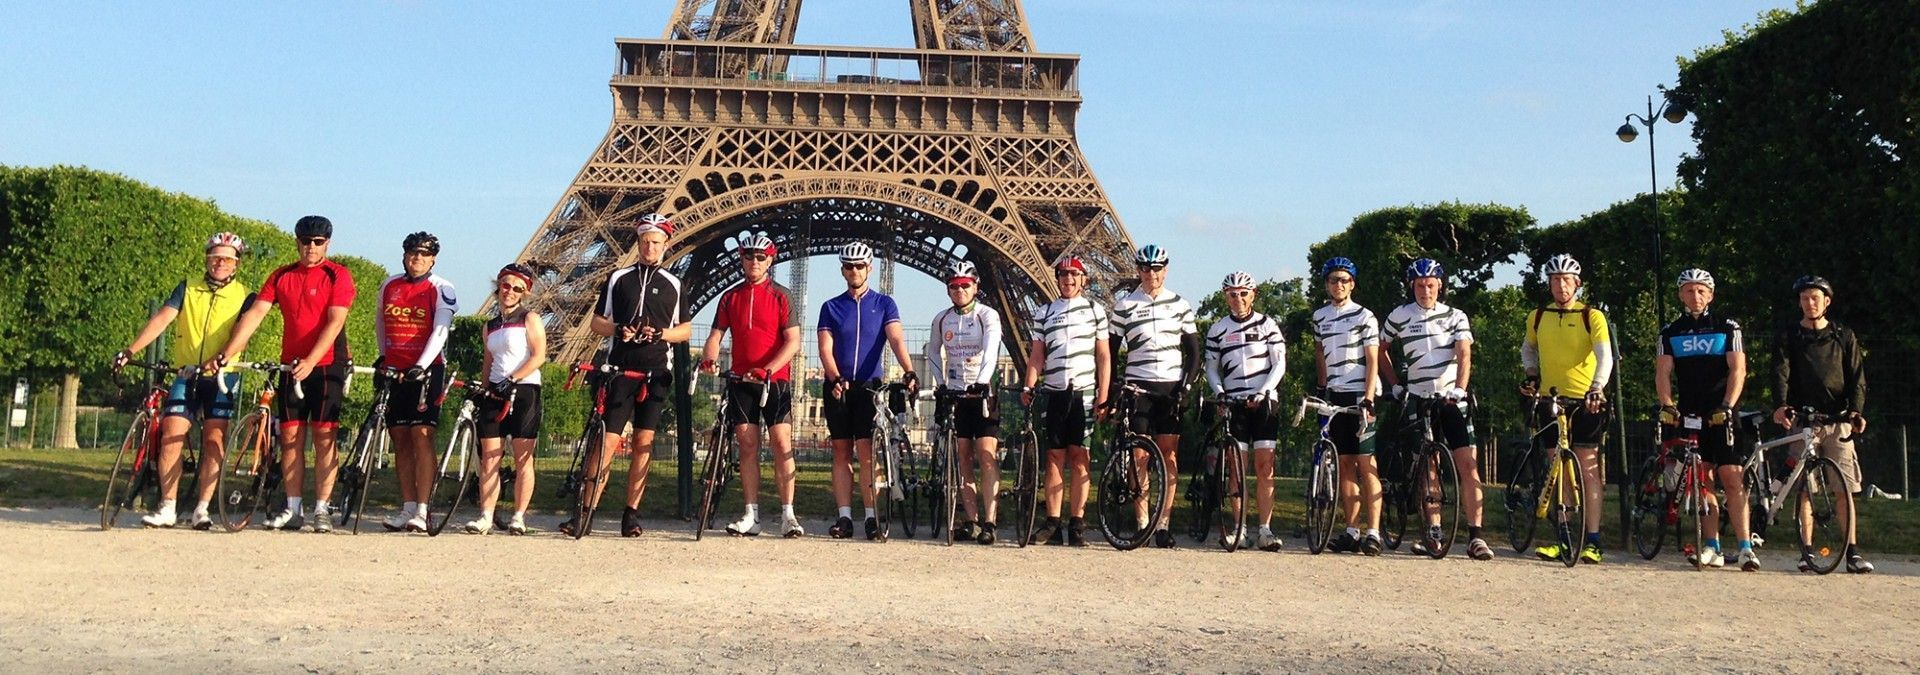 Paris_to_Geneva_cyclists_at_startline.jpg